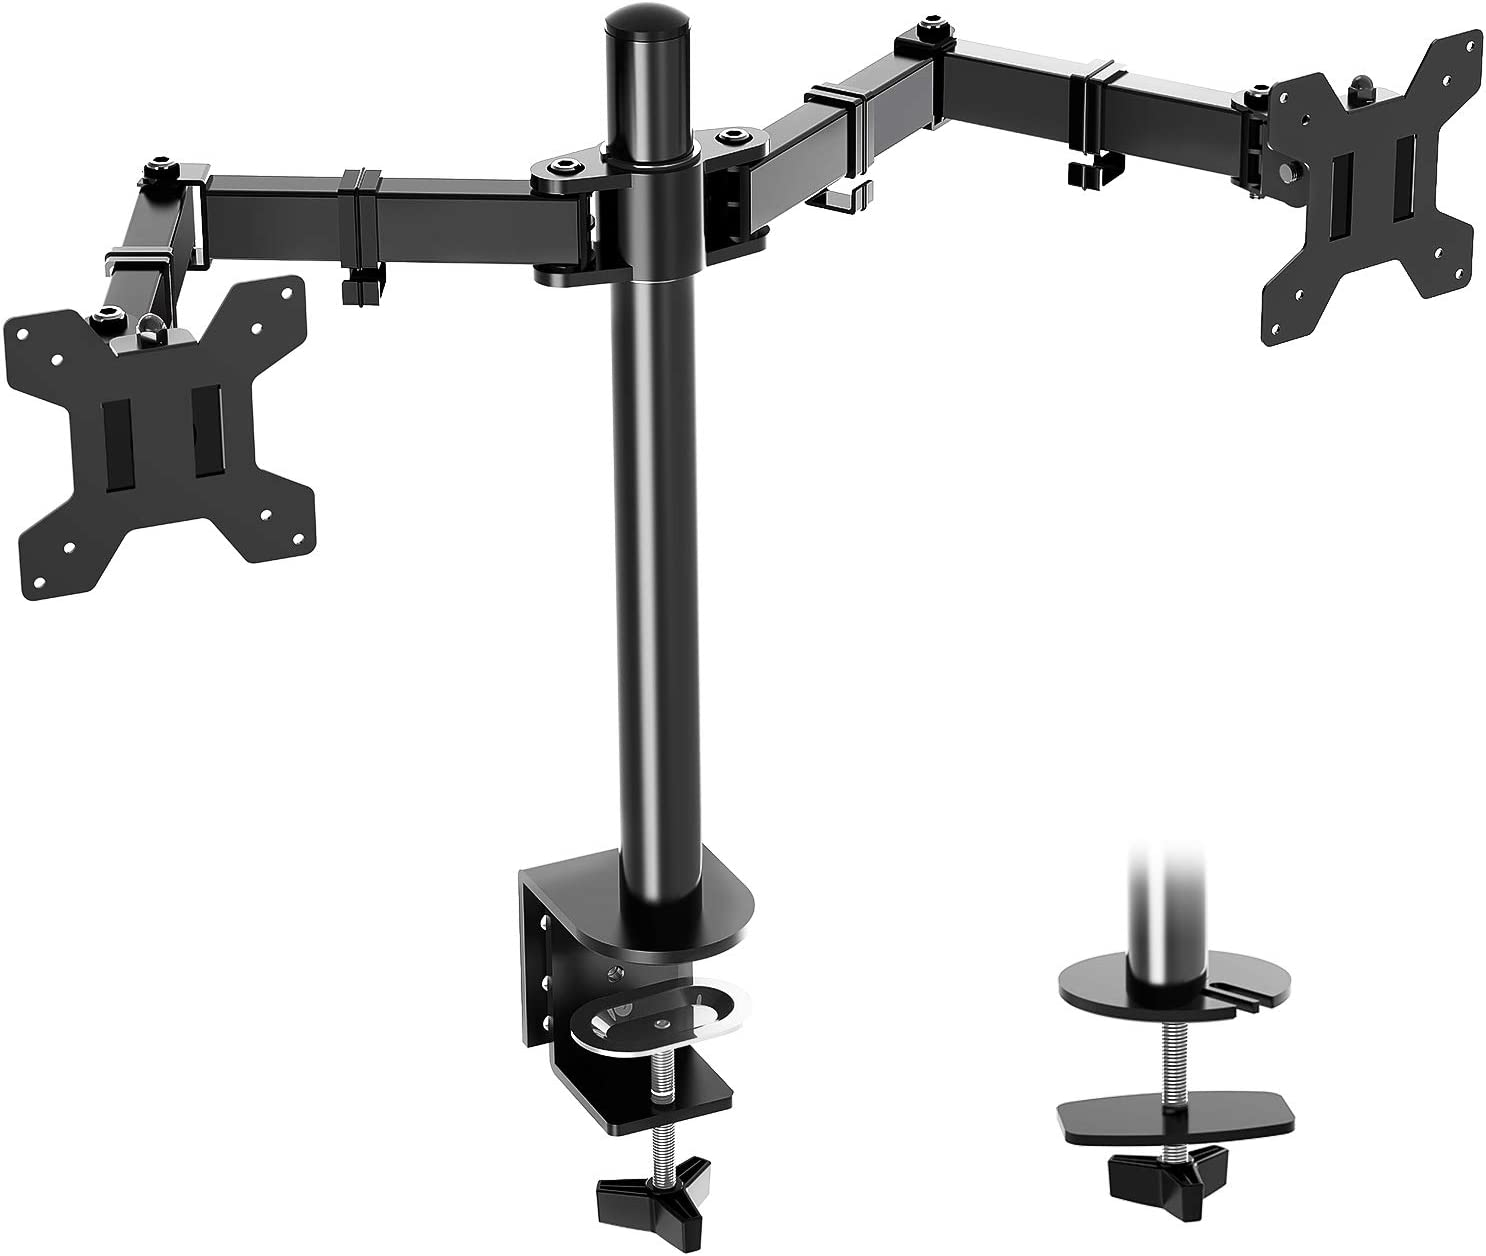 MOUNTUP Dual Monitor Desk Mount Stand, Full Motion Computer Monitor Arm Mount for 2 LCD Screens up to 27 Inch, Dual Monitor Stand with C-Clamp and Grommet Base MU0002